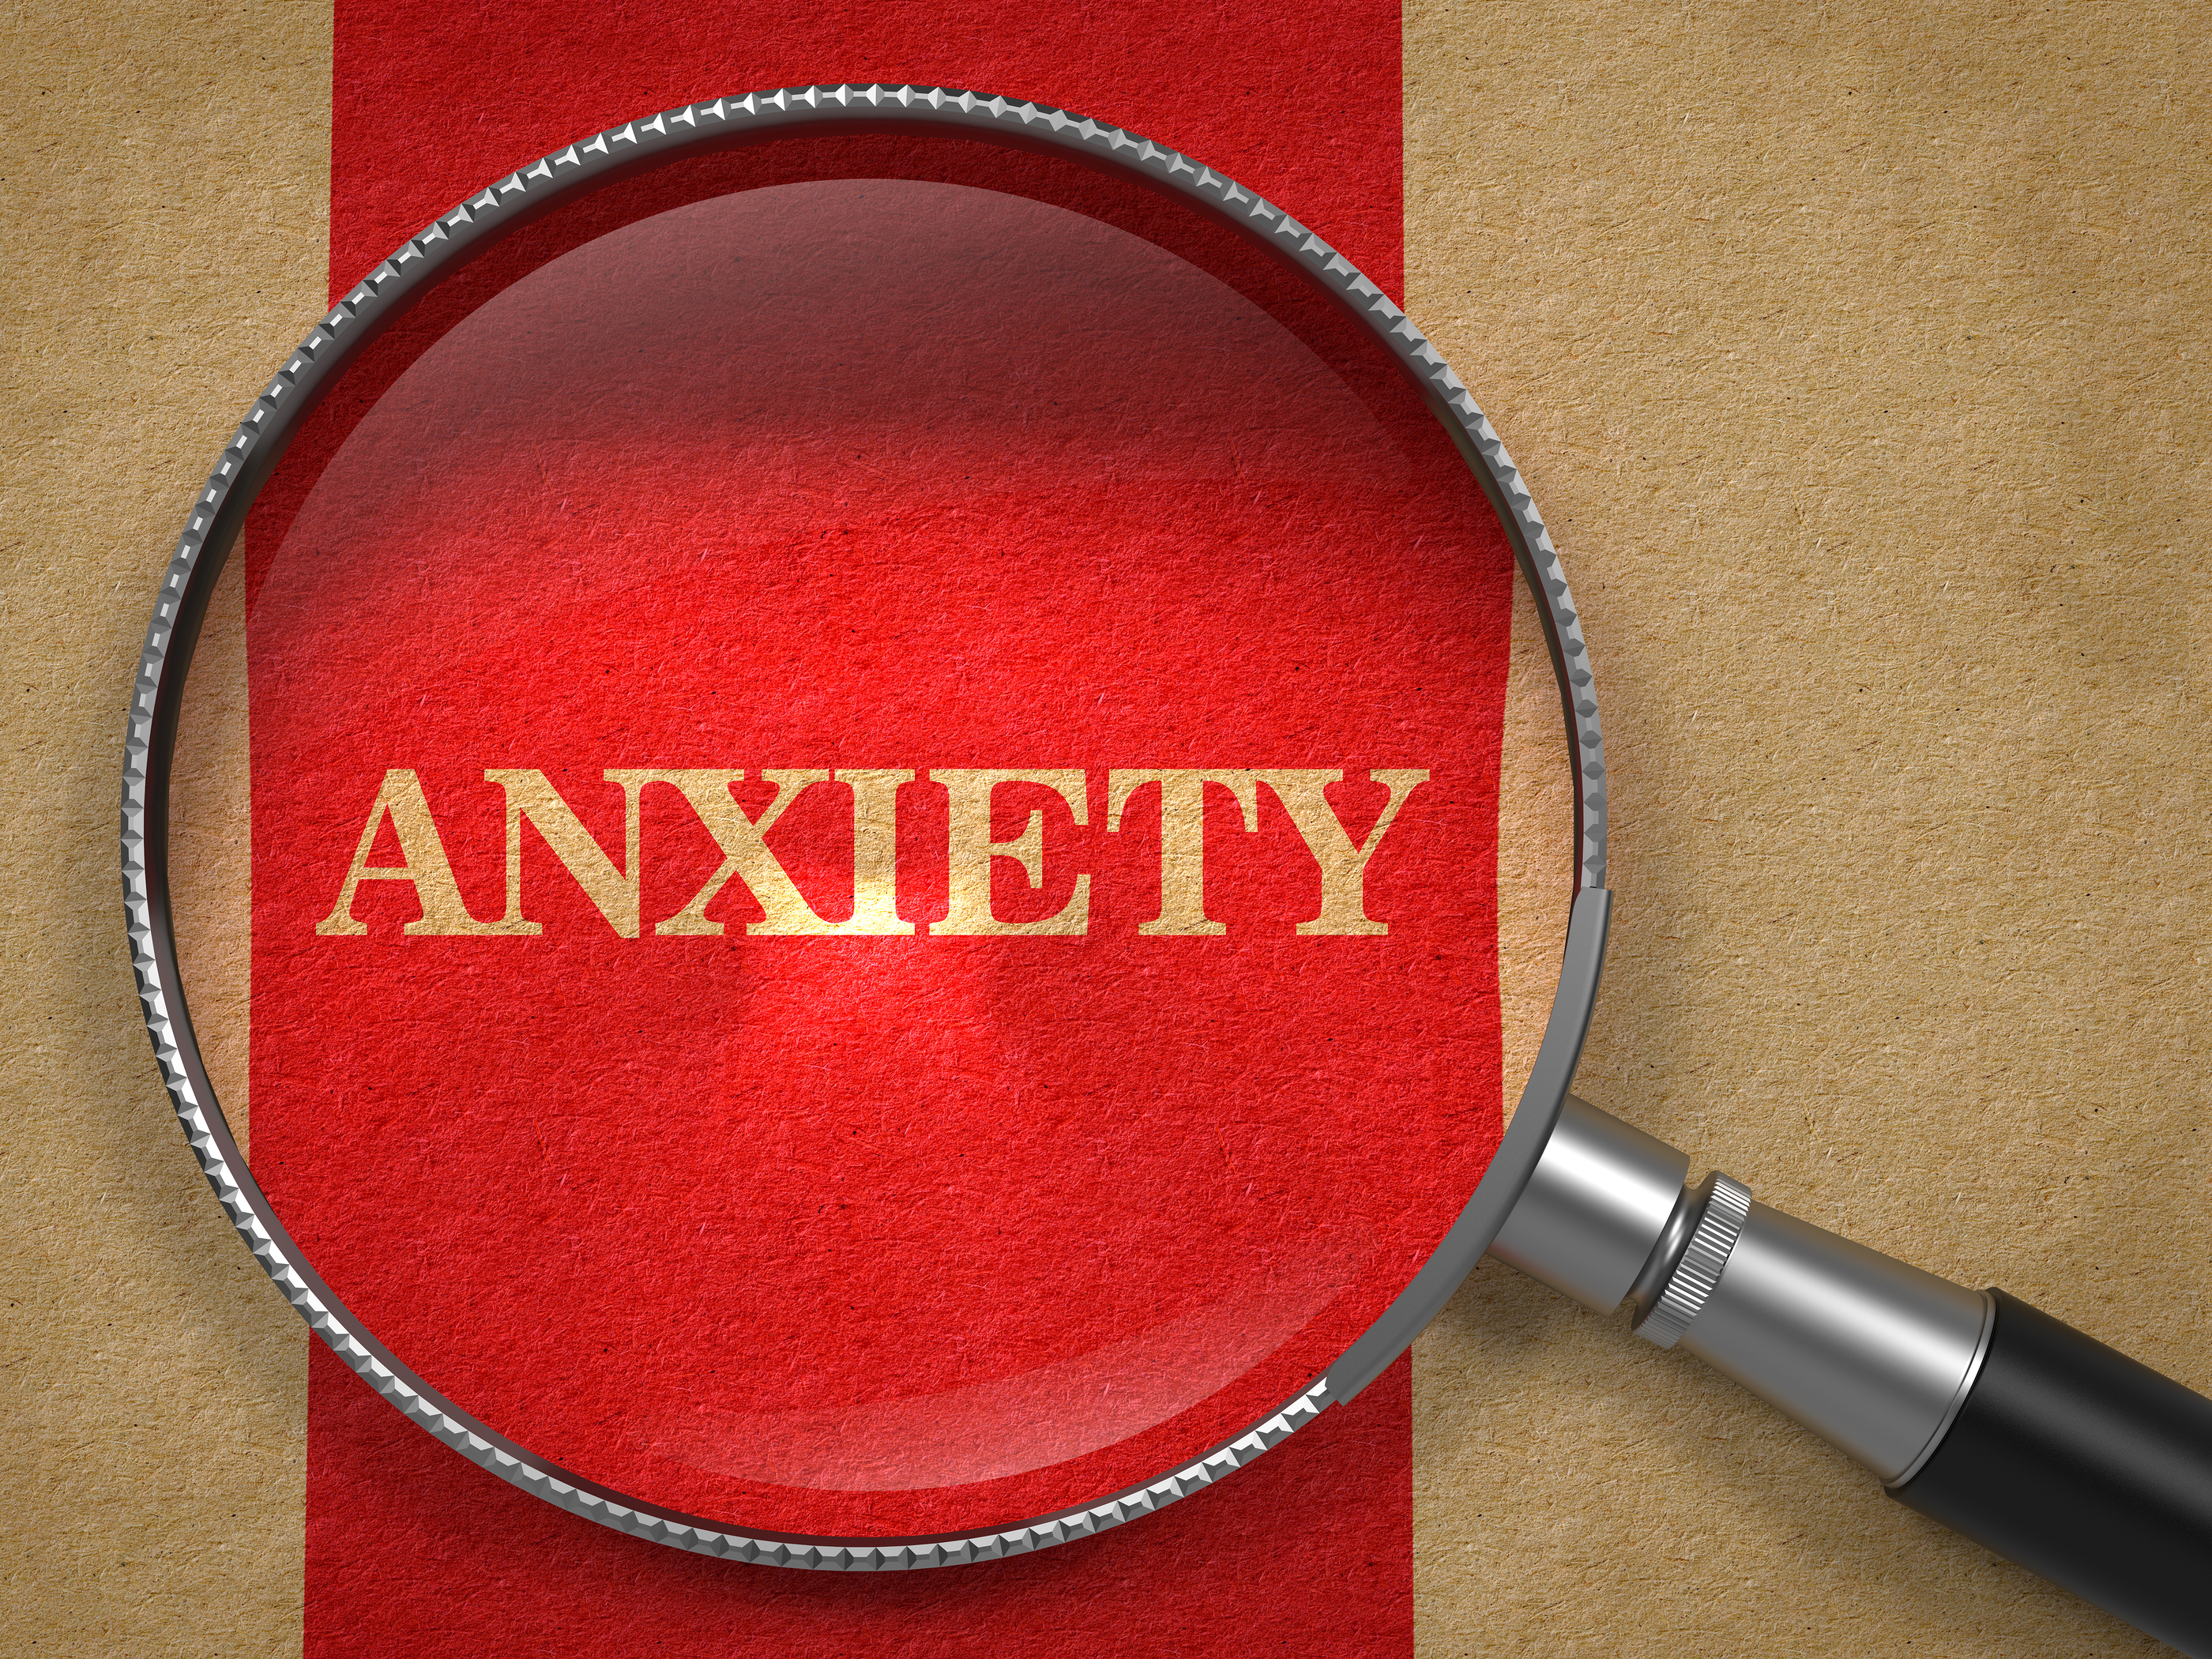 Some ways your church can support people with Anxiety